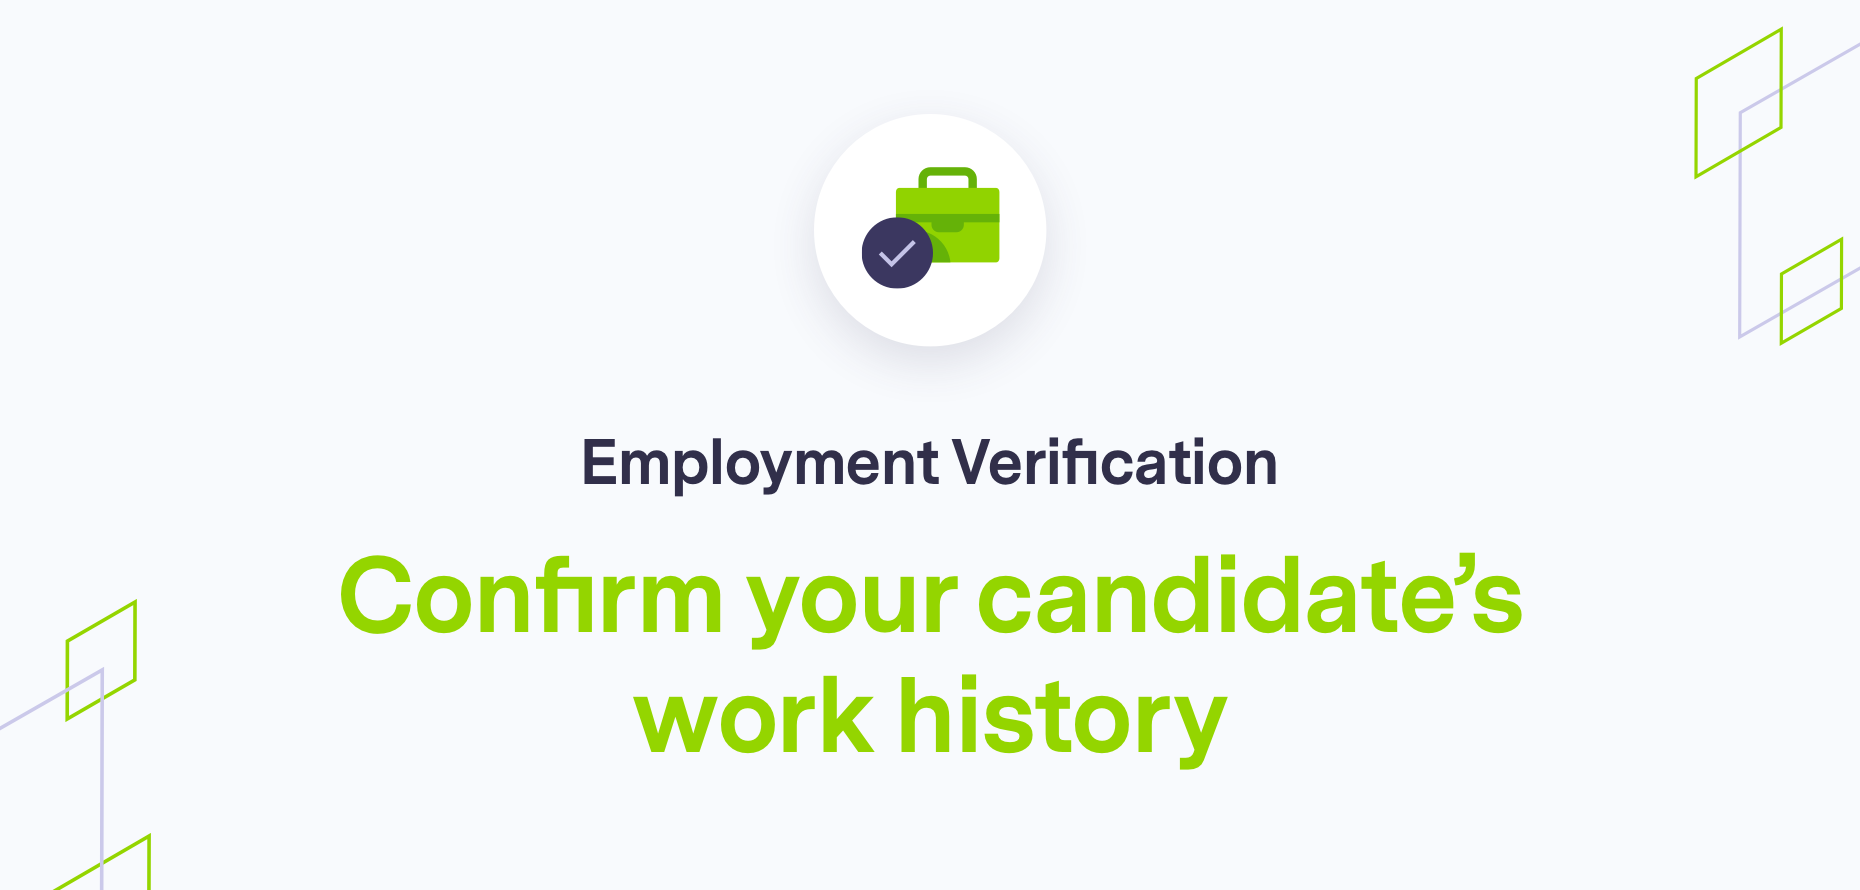 Image on employment verification text with branding